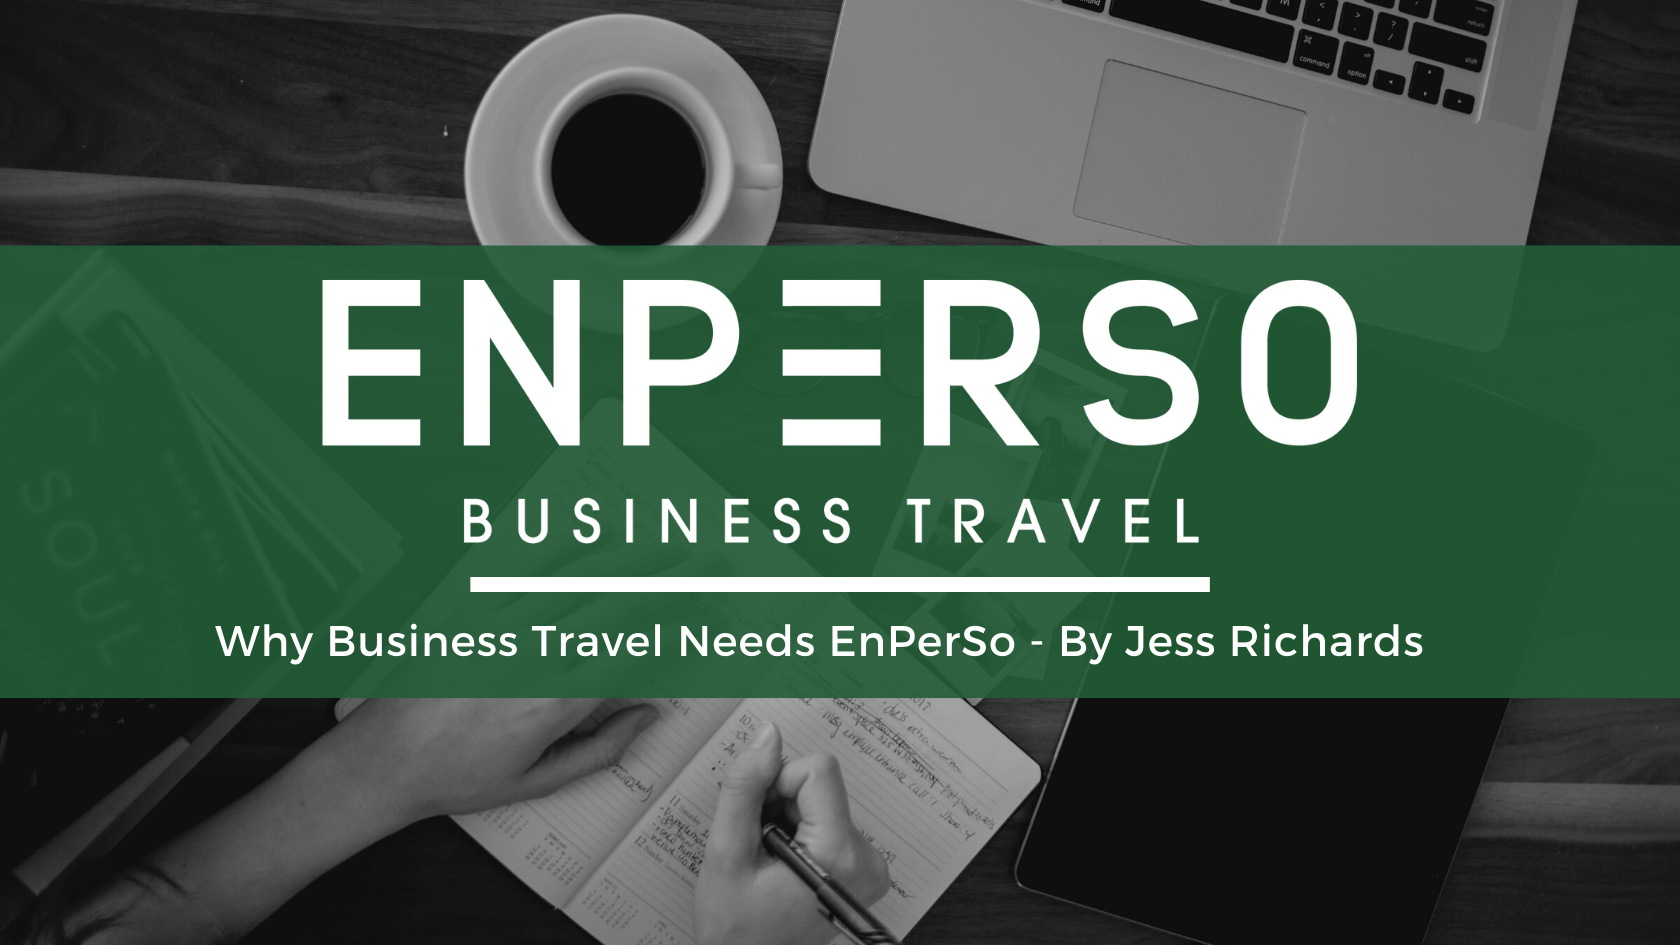 Why Business Travel Needs EnPerSo